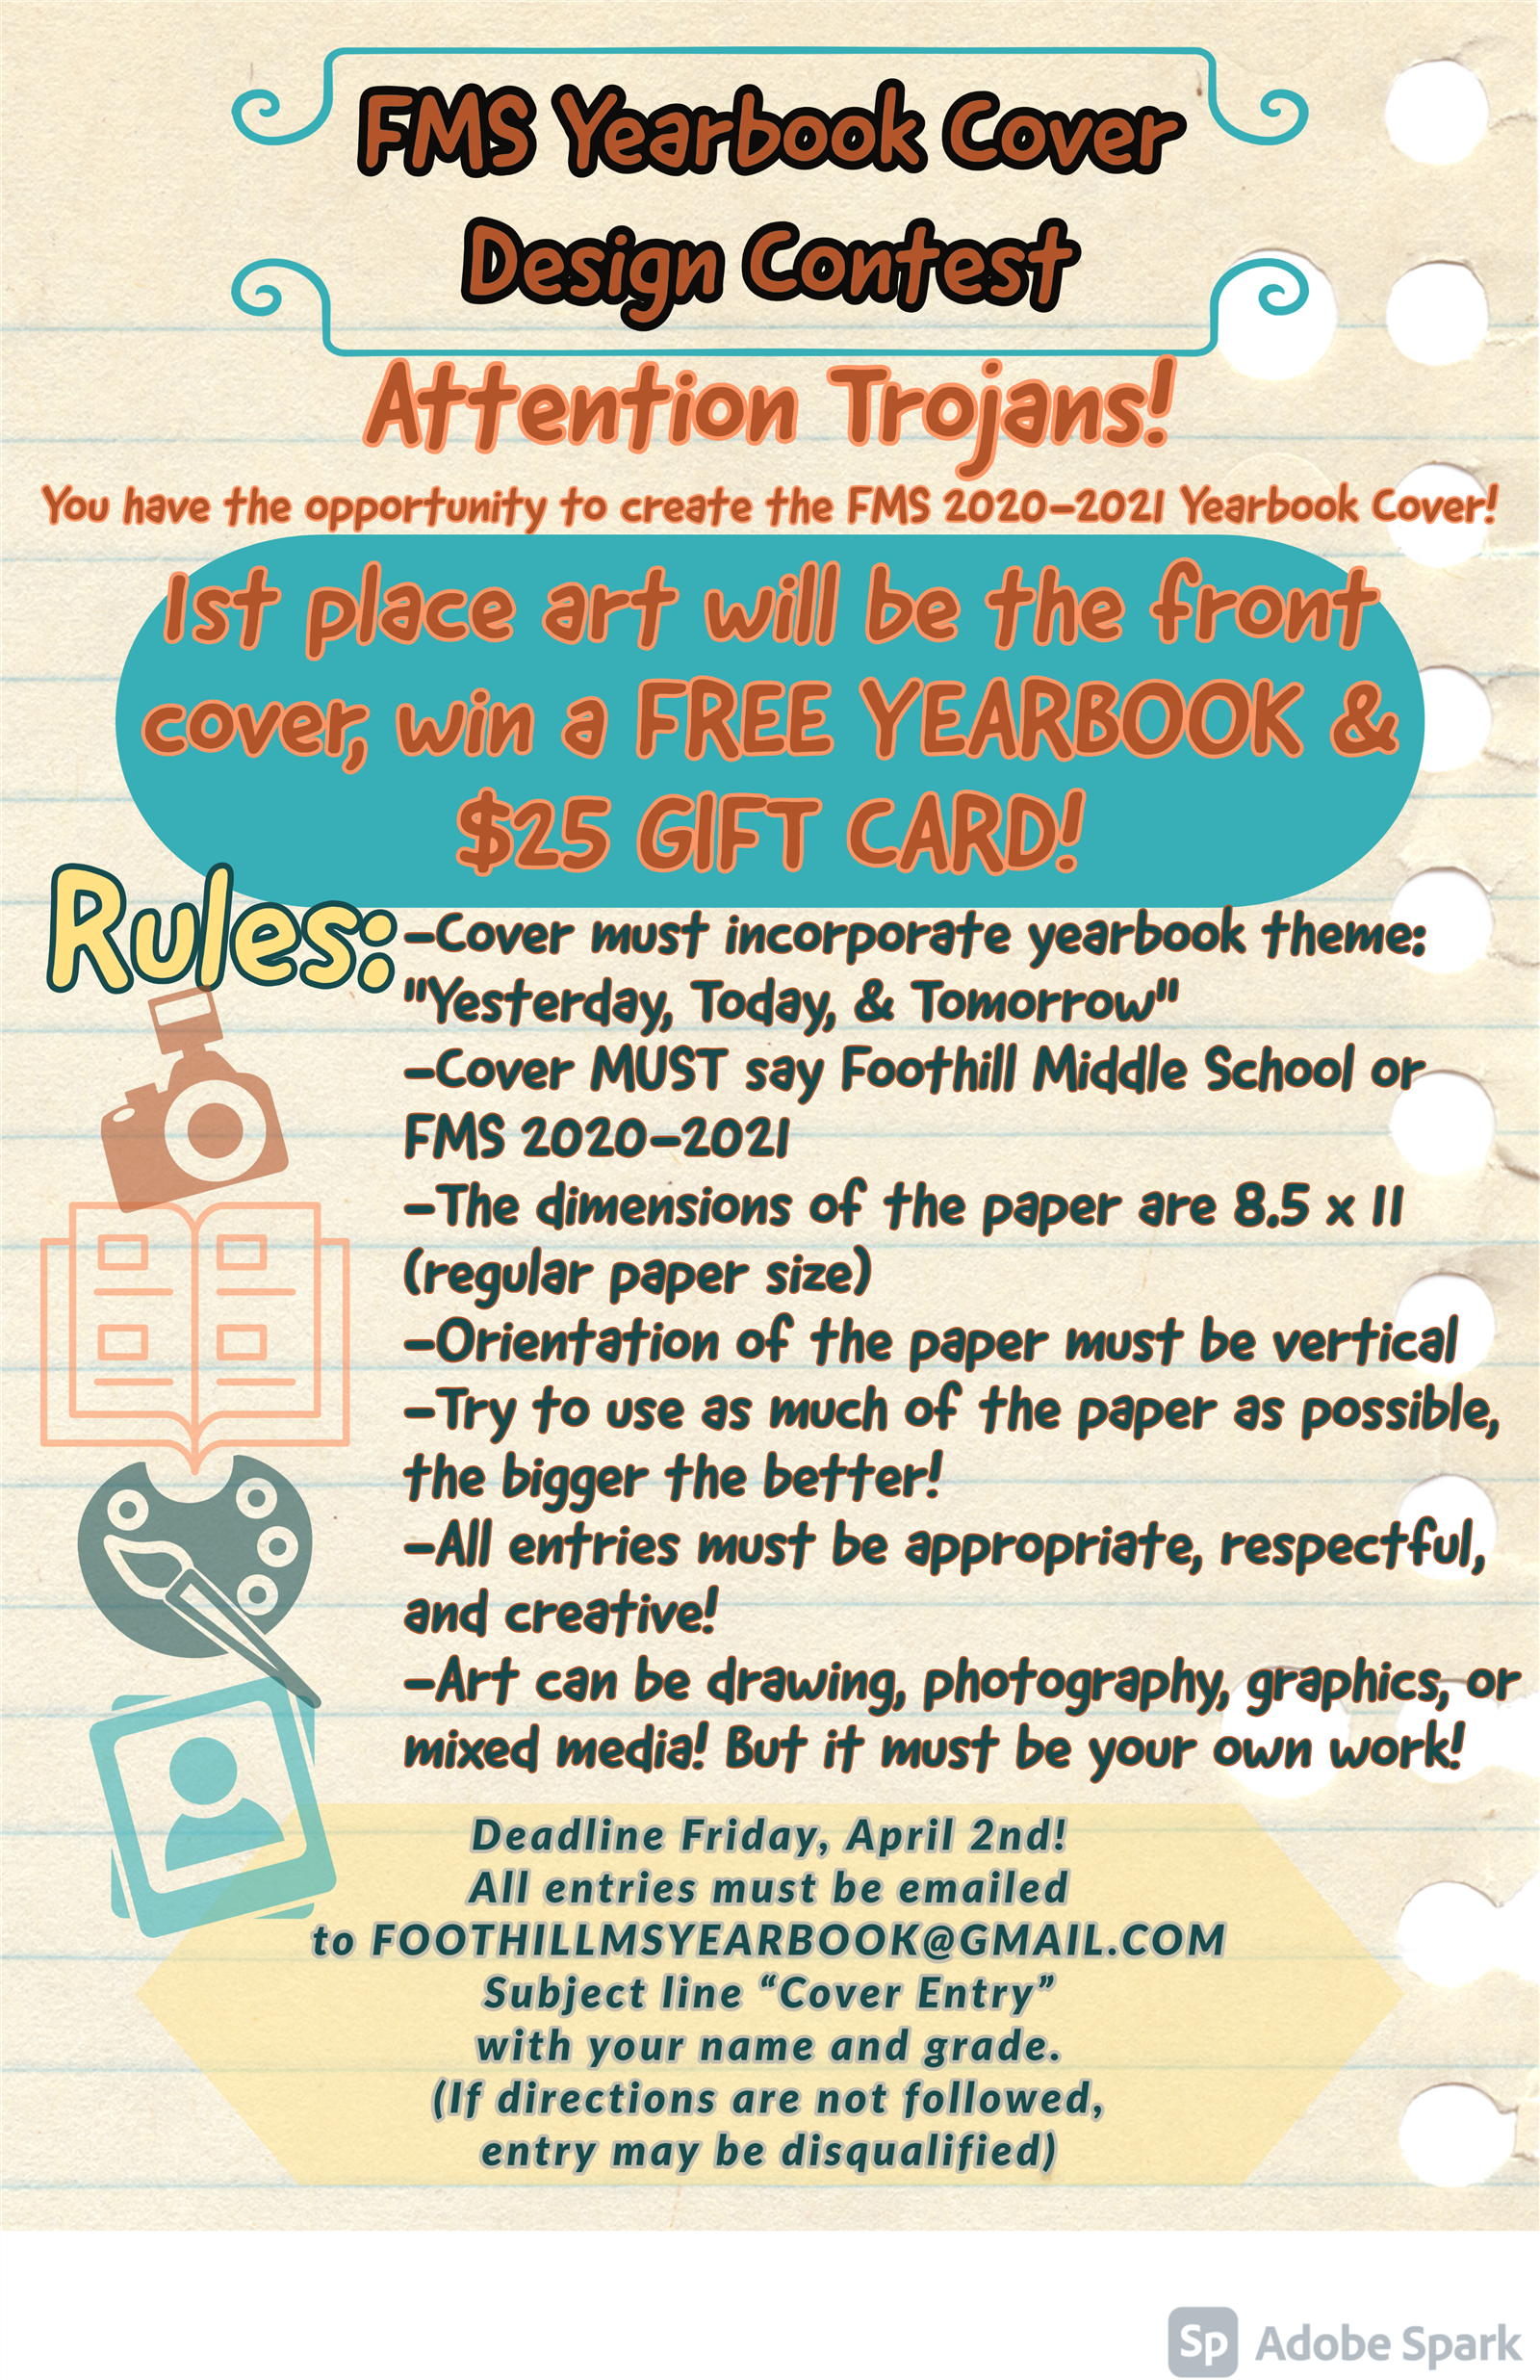 Win a FREE yearbook along with a $25 Gift Card!